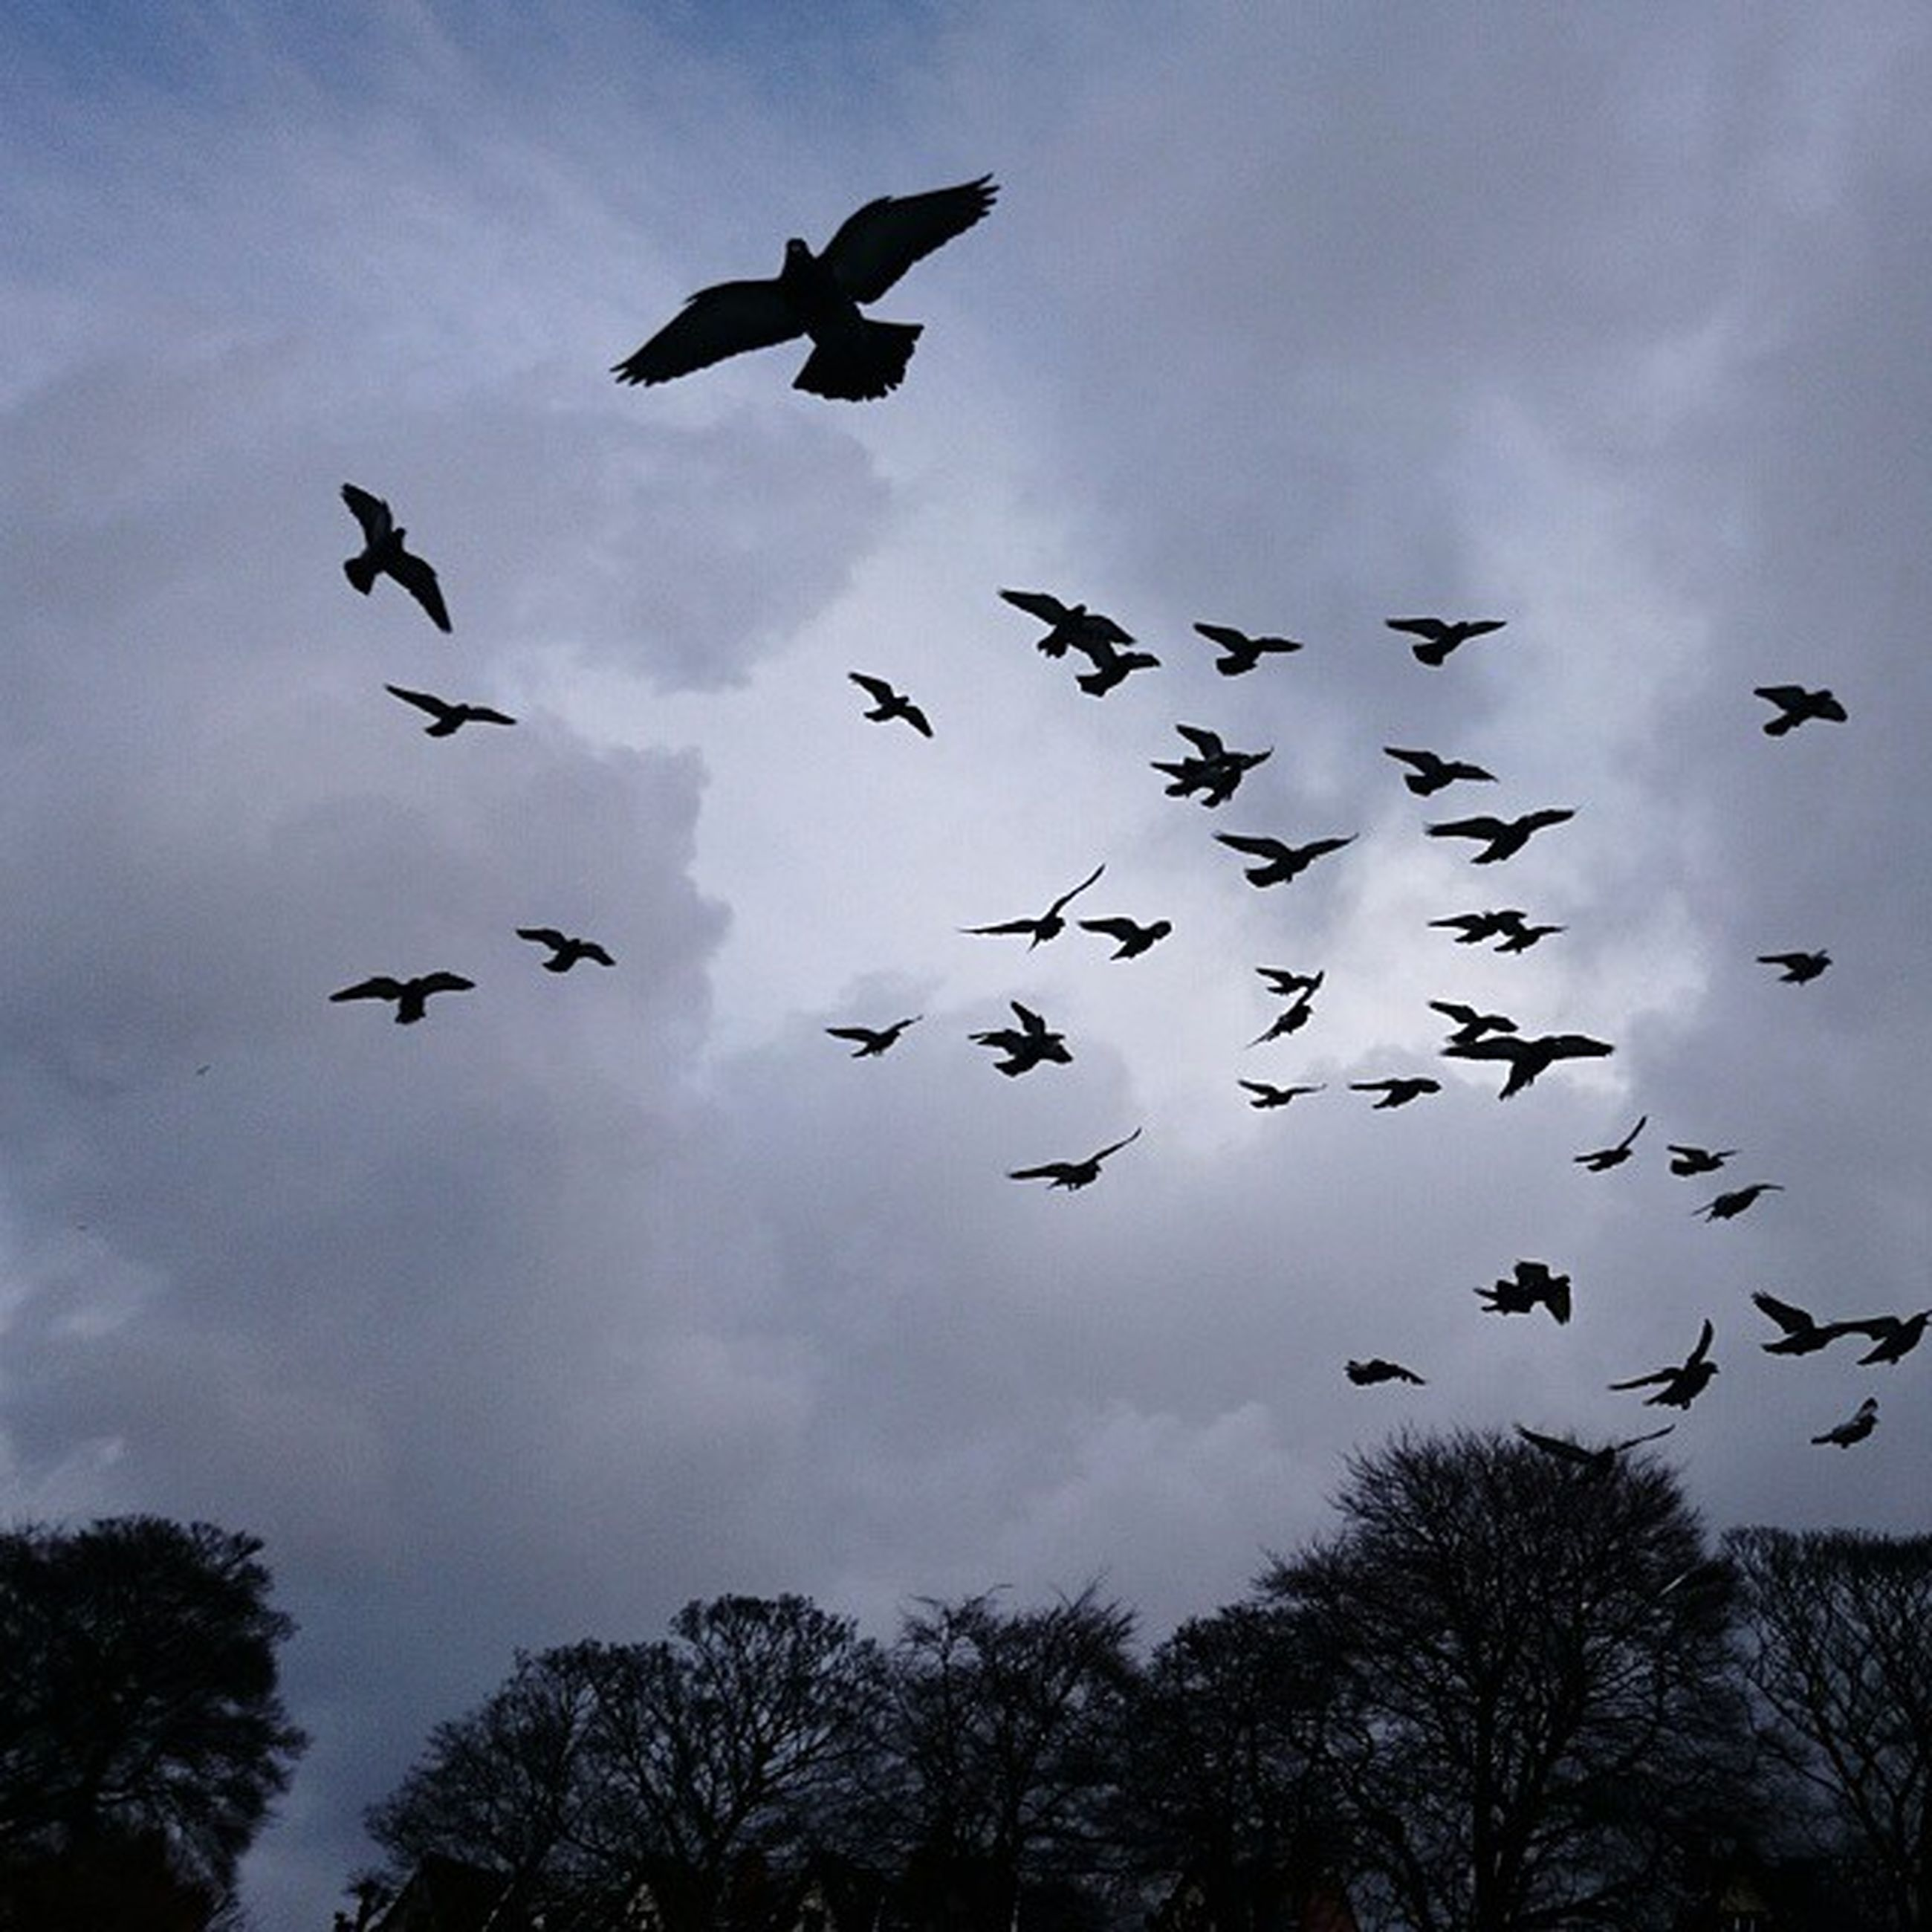 bird, flying, animals in the wild, animal themes, wildlife, low angle view, flock of birds, sky, silhouette, spread wings, mid-air, cloud - sky, tree, nature, beauty in nature, cloud, outdoors, cloudy, medium group of animals